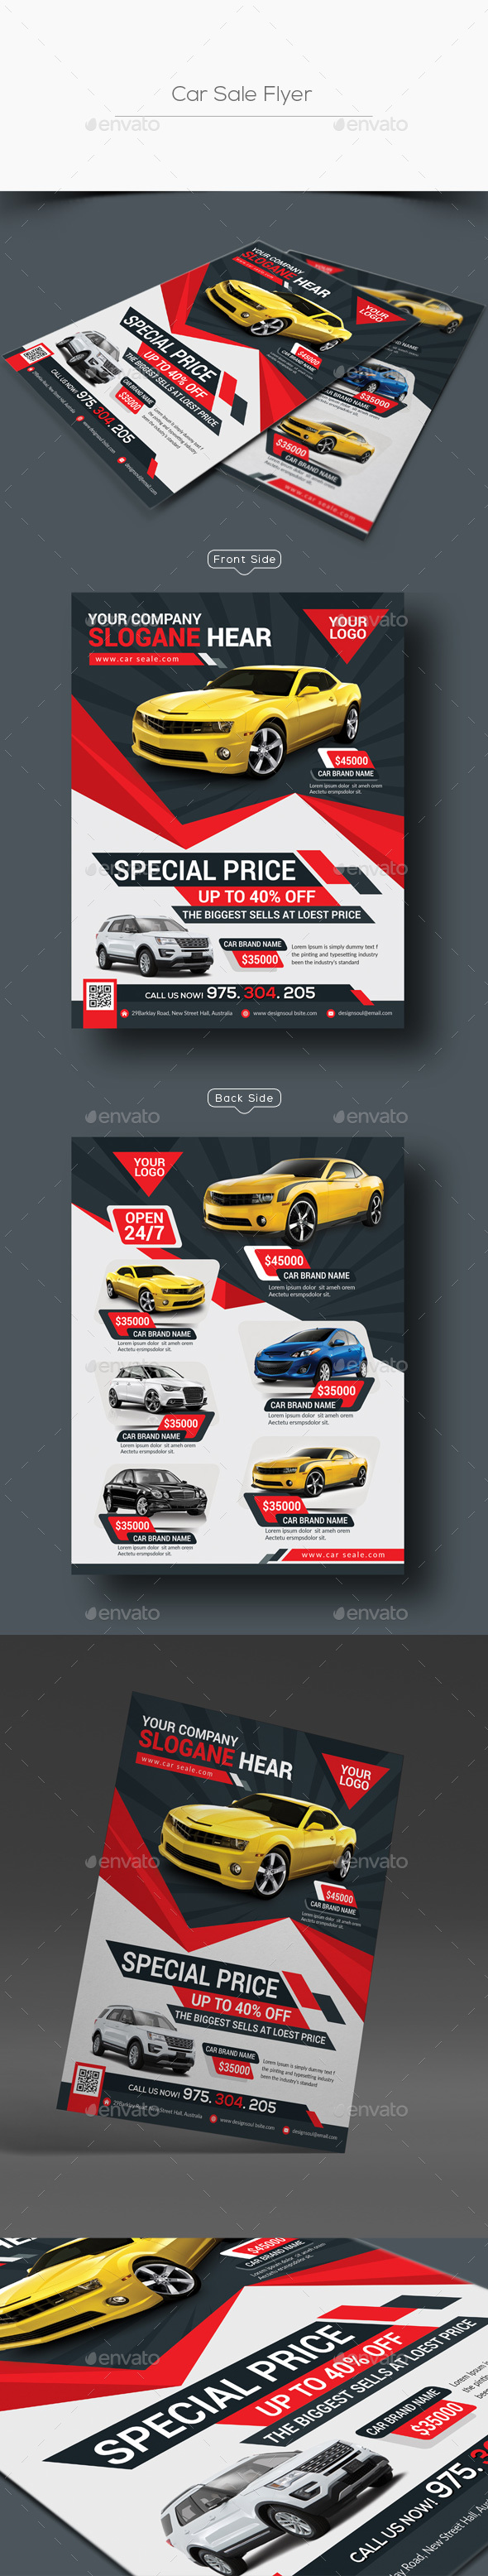 Car Sale Flyer Graphics, Designs & Templates from GraphicRiver